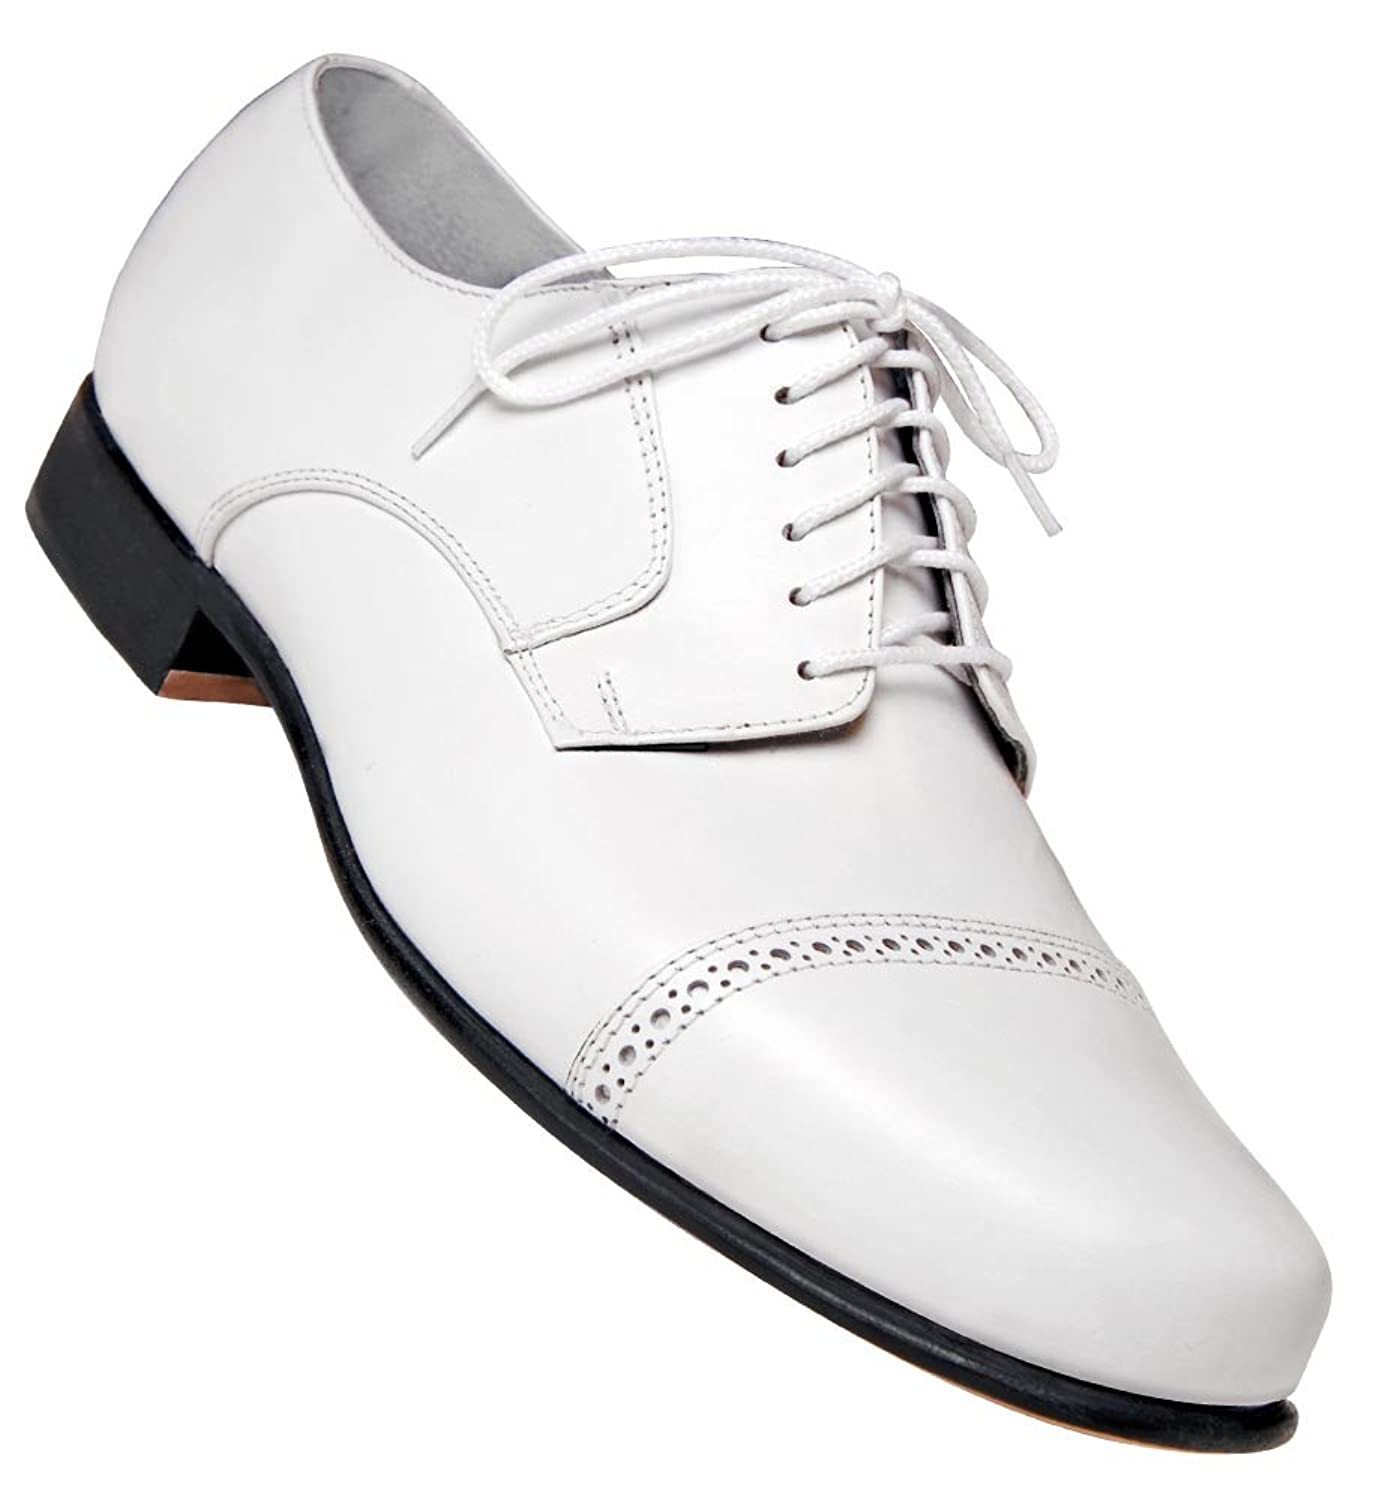 1940s Style Mens Shoes Mens 1930s White Captoe Dance Shoe $74.95 AT vintagedancer.com